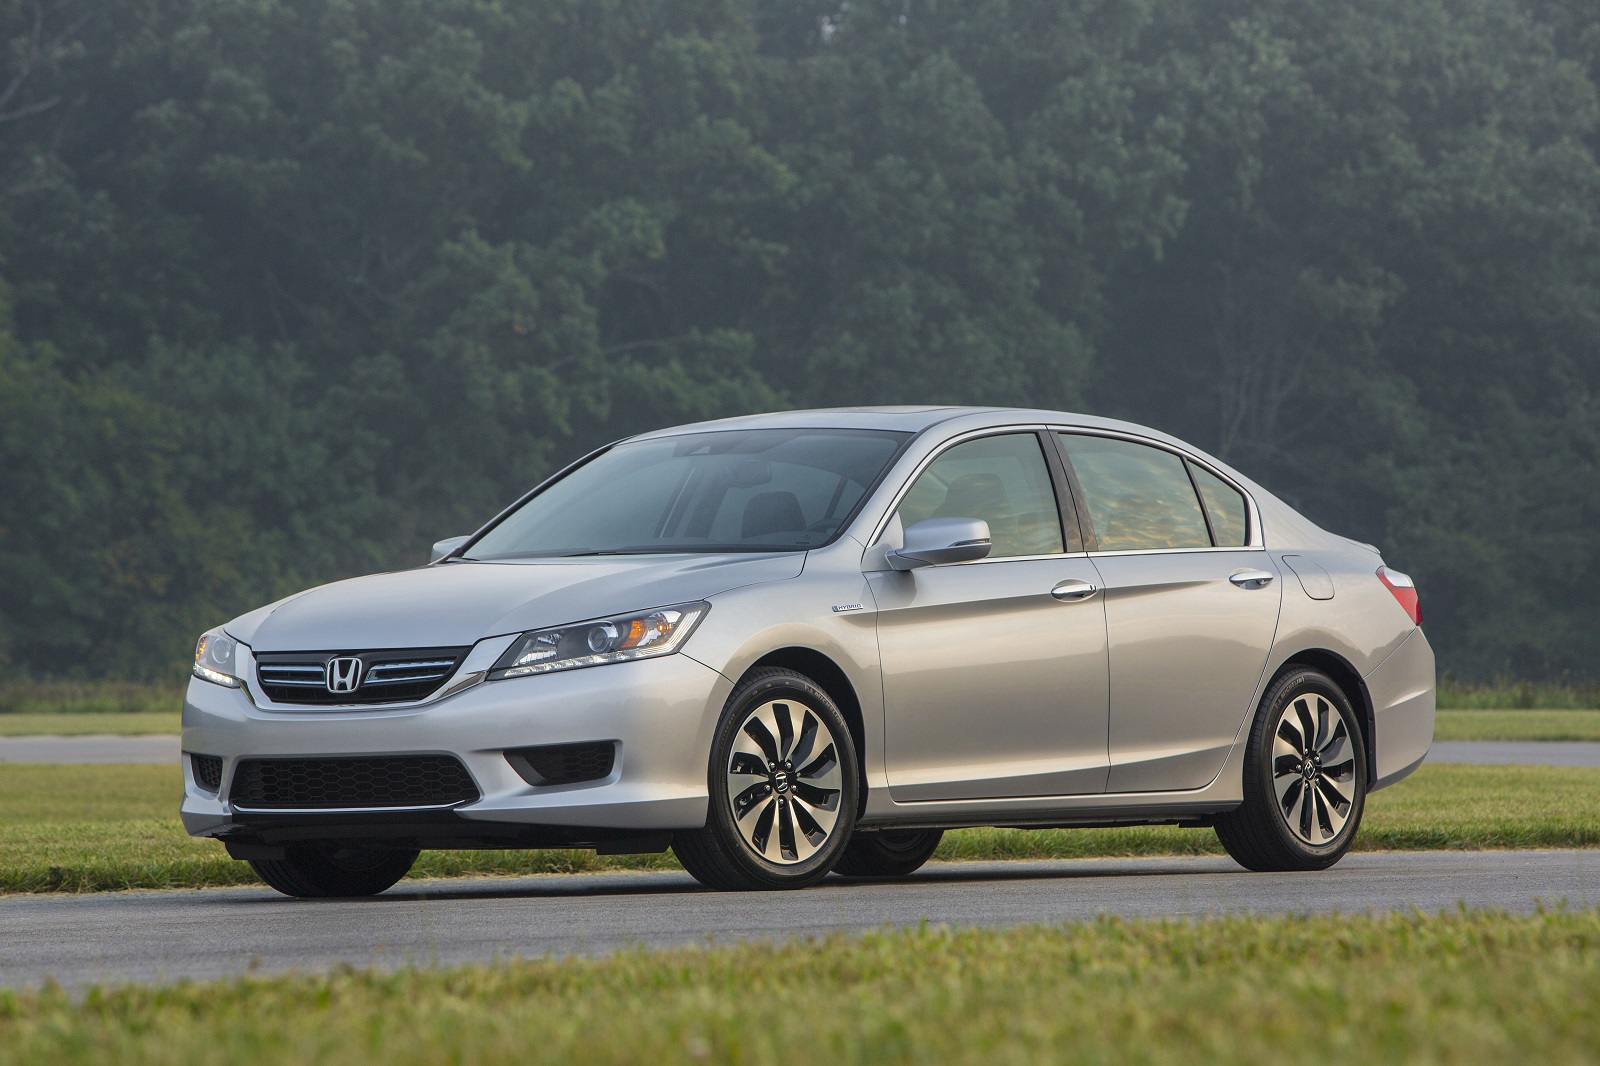 2015 honda accord hybrid review ratings specs prices. Black Bedroom Furniture Sets. Home Design Ideas